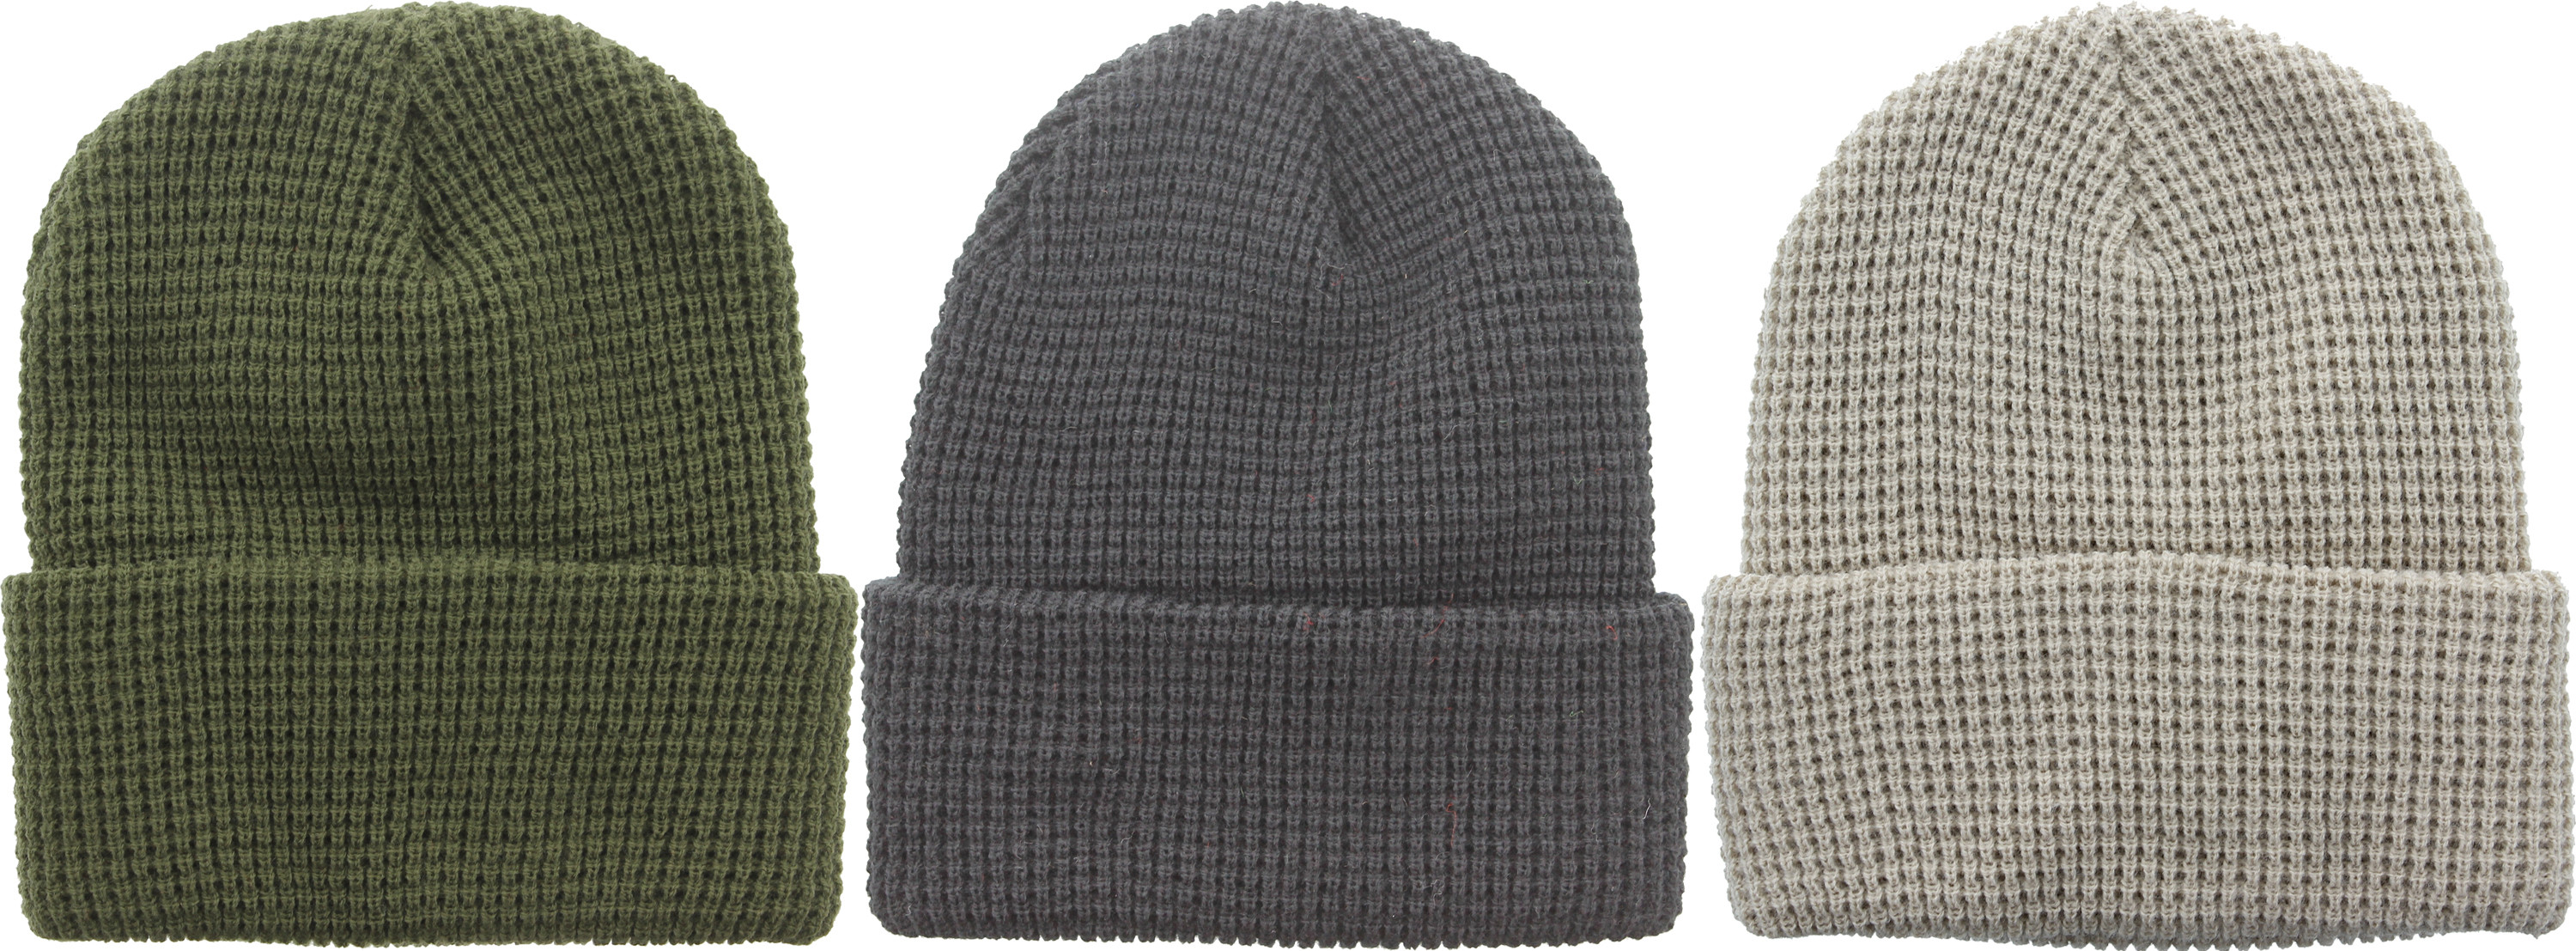 Waffle Knit Winter Cold Weather Acrylic Military Watch Cap Hat df9d8105f